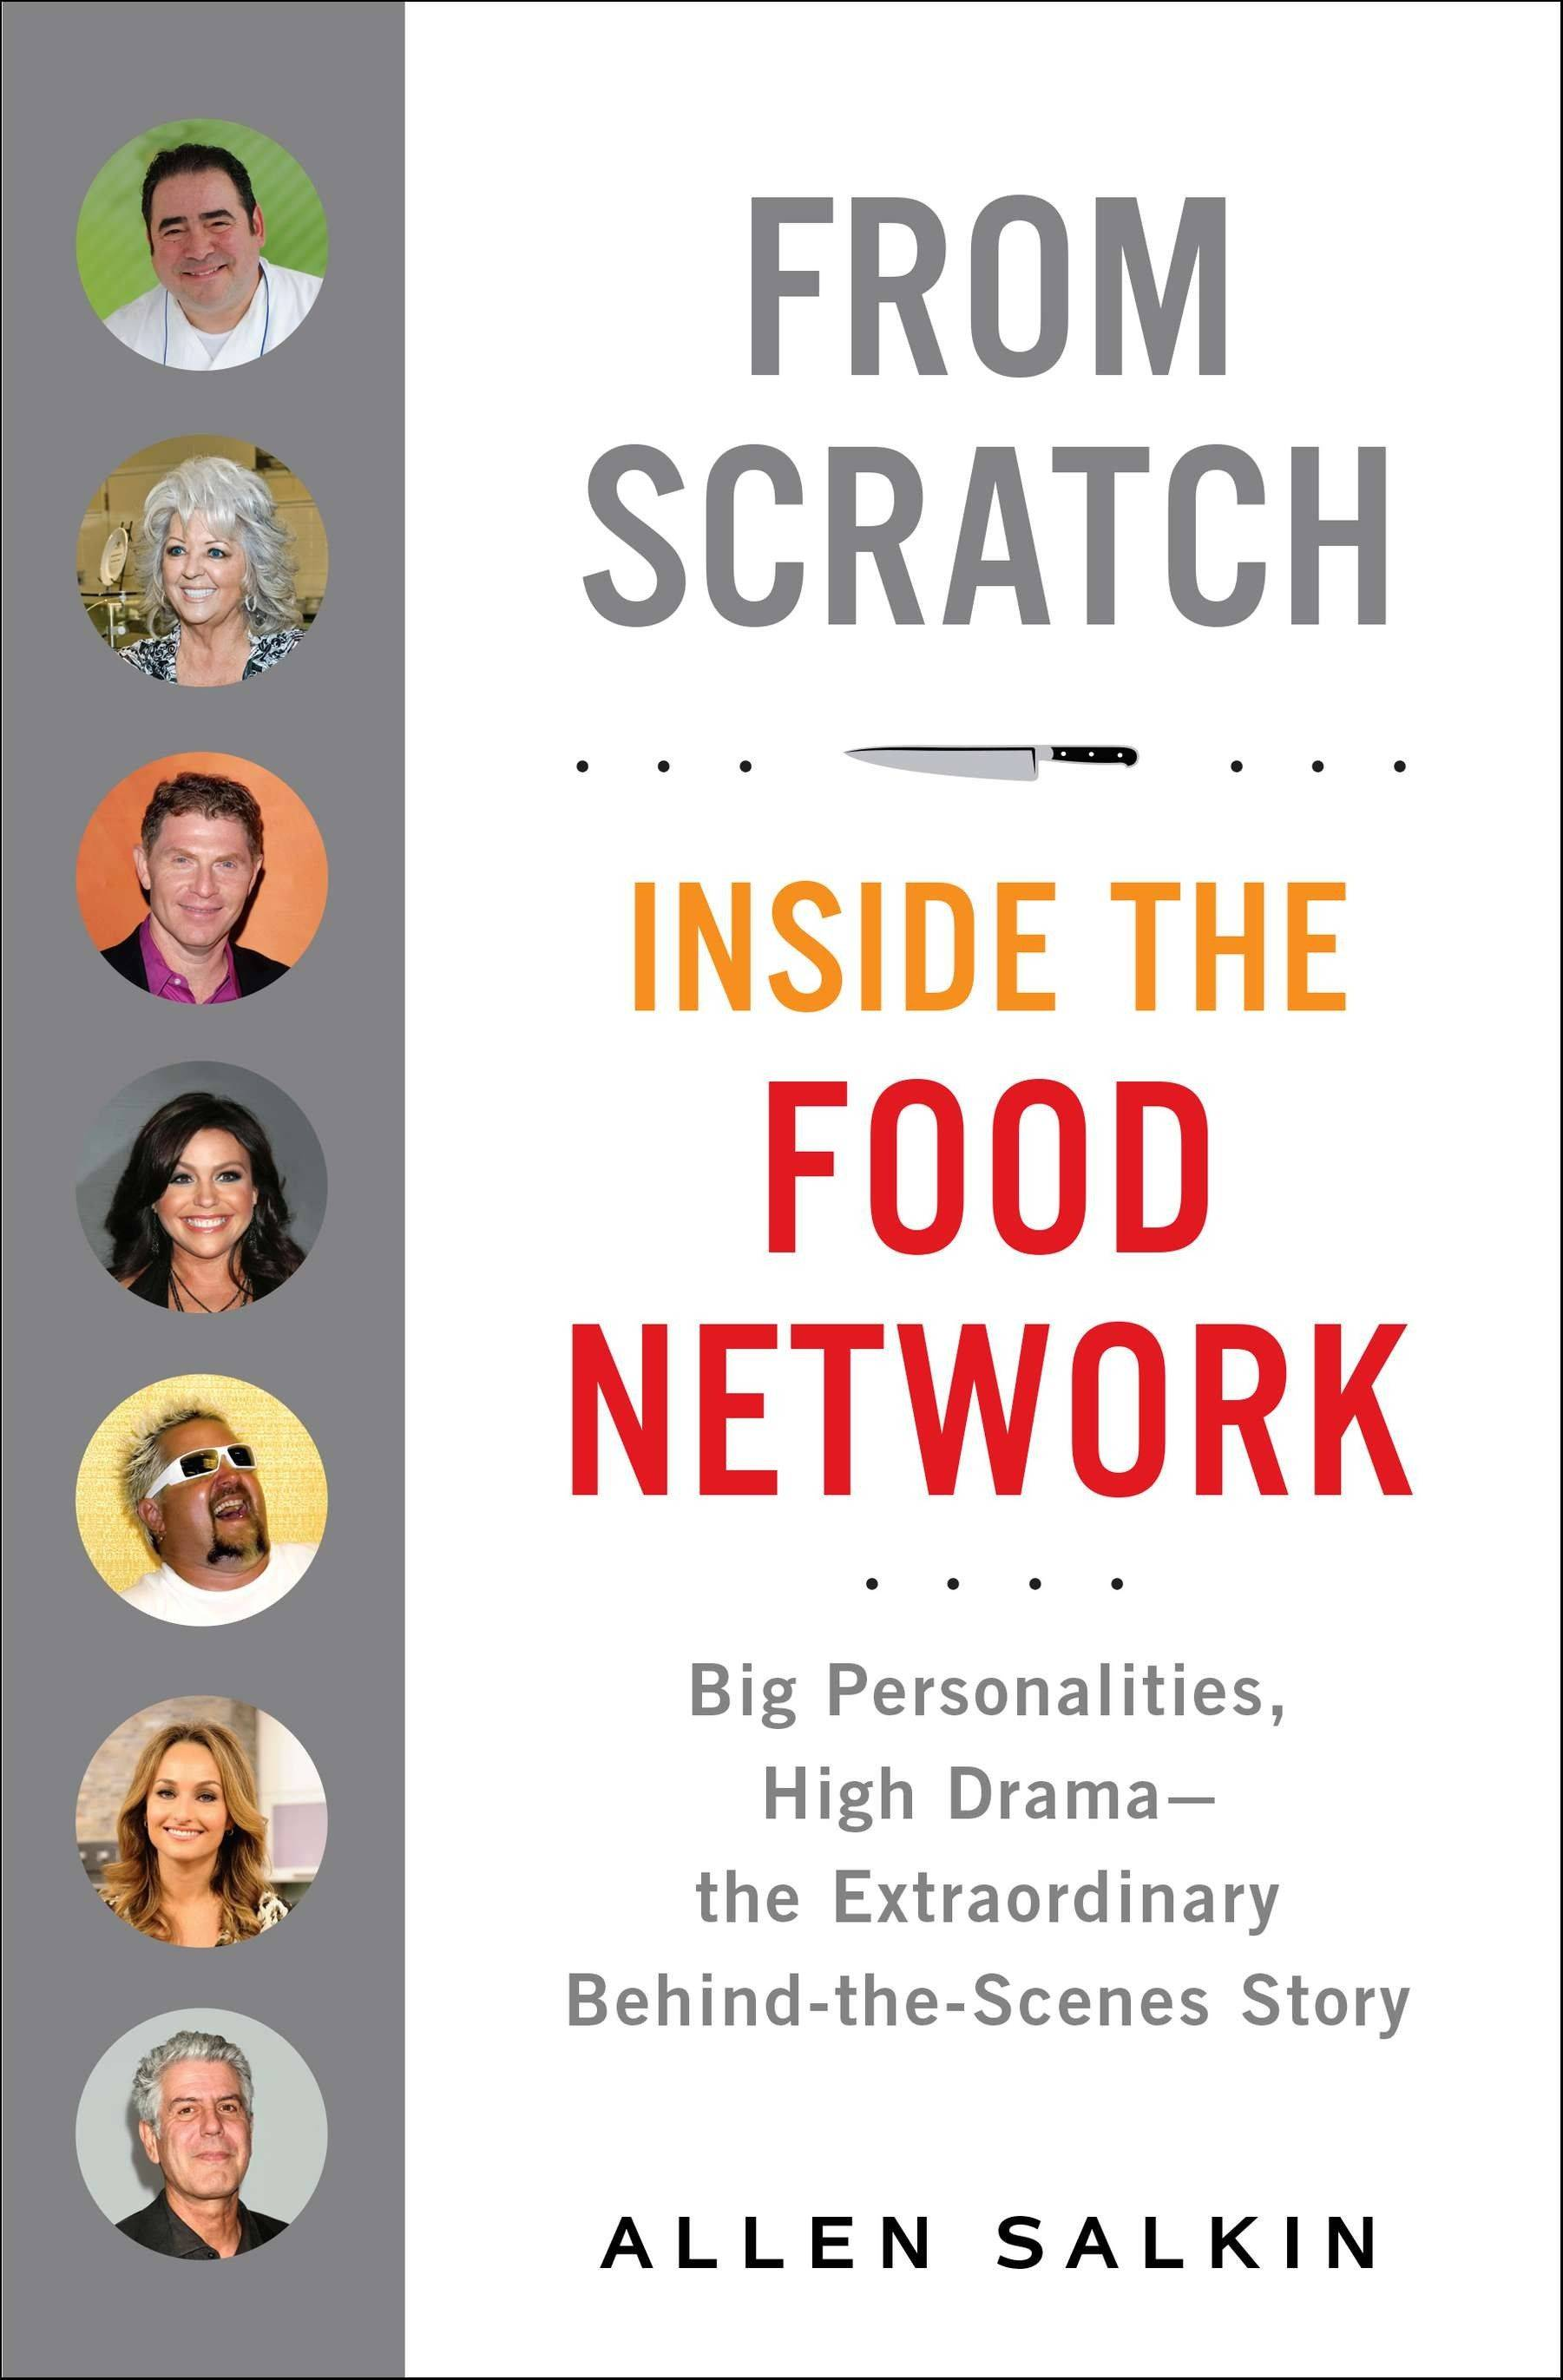 """From Scratch: Inside the Food Network, Big Personalities, High Drama -- the Extraordinary Behind-the-Scenes Story"" by Allen Salkin"